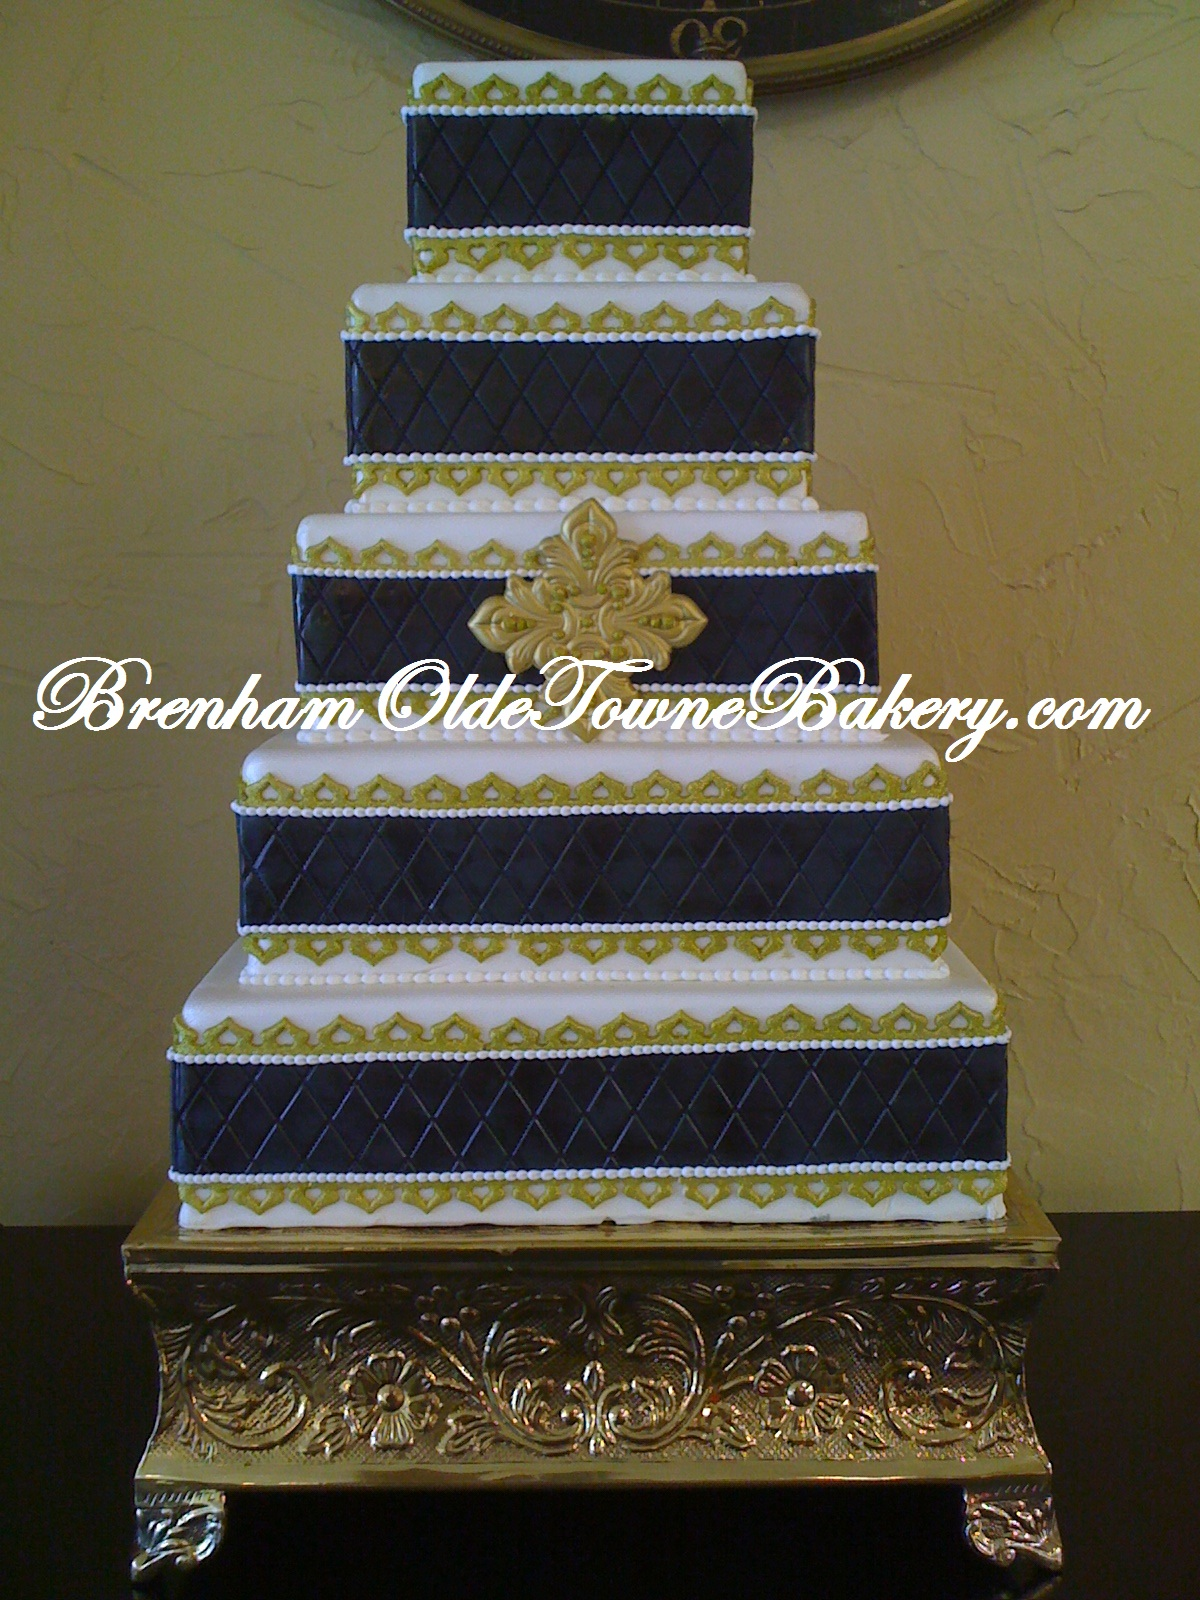 Black and Gold Wedding cake | Brenham Olde Towne Bakery